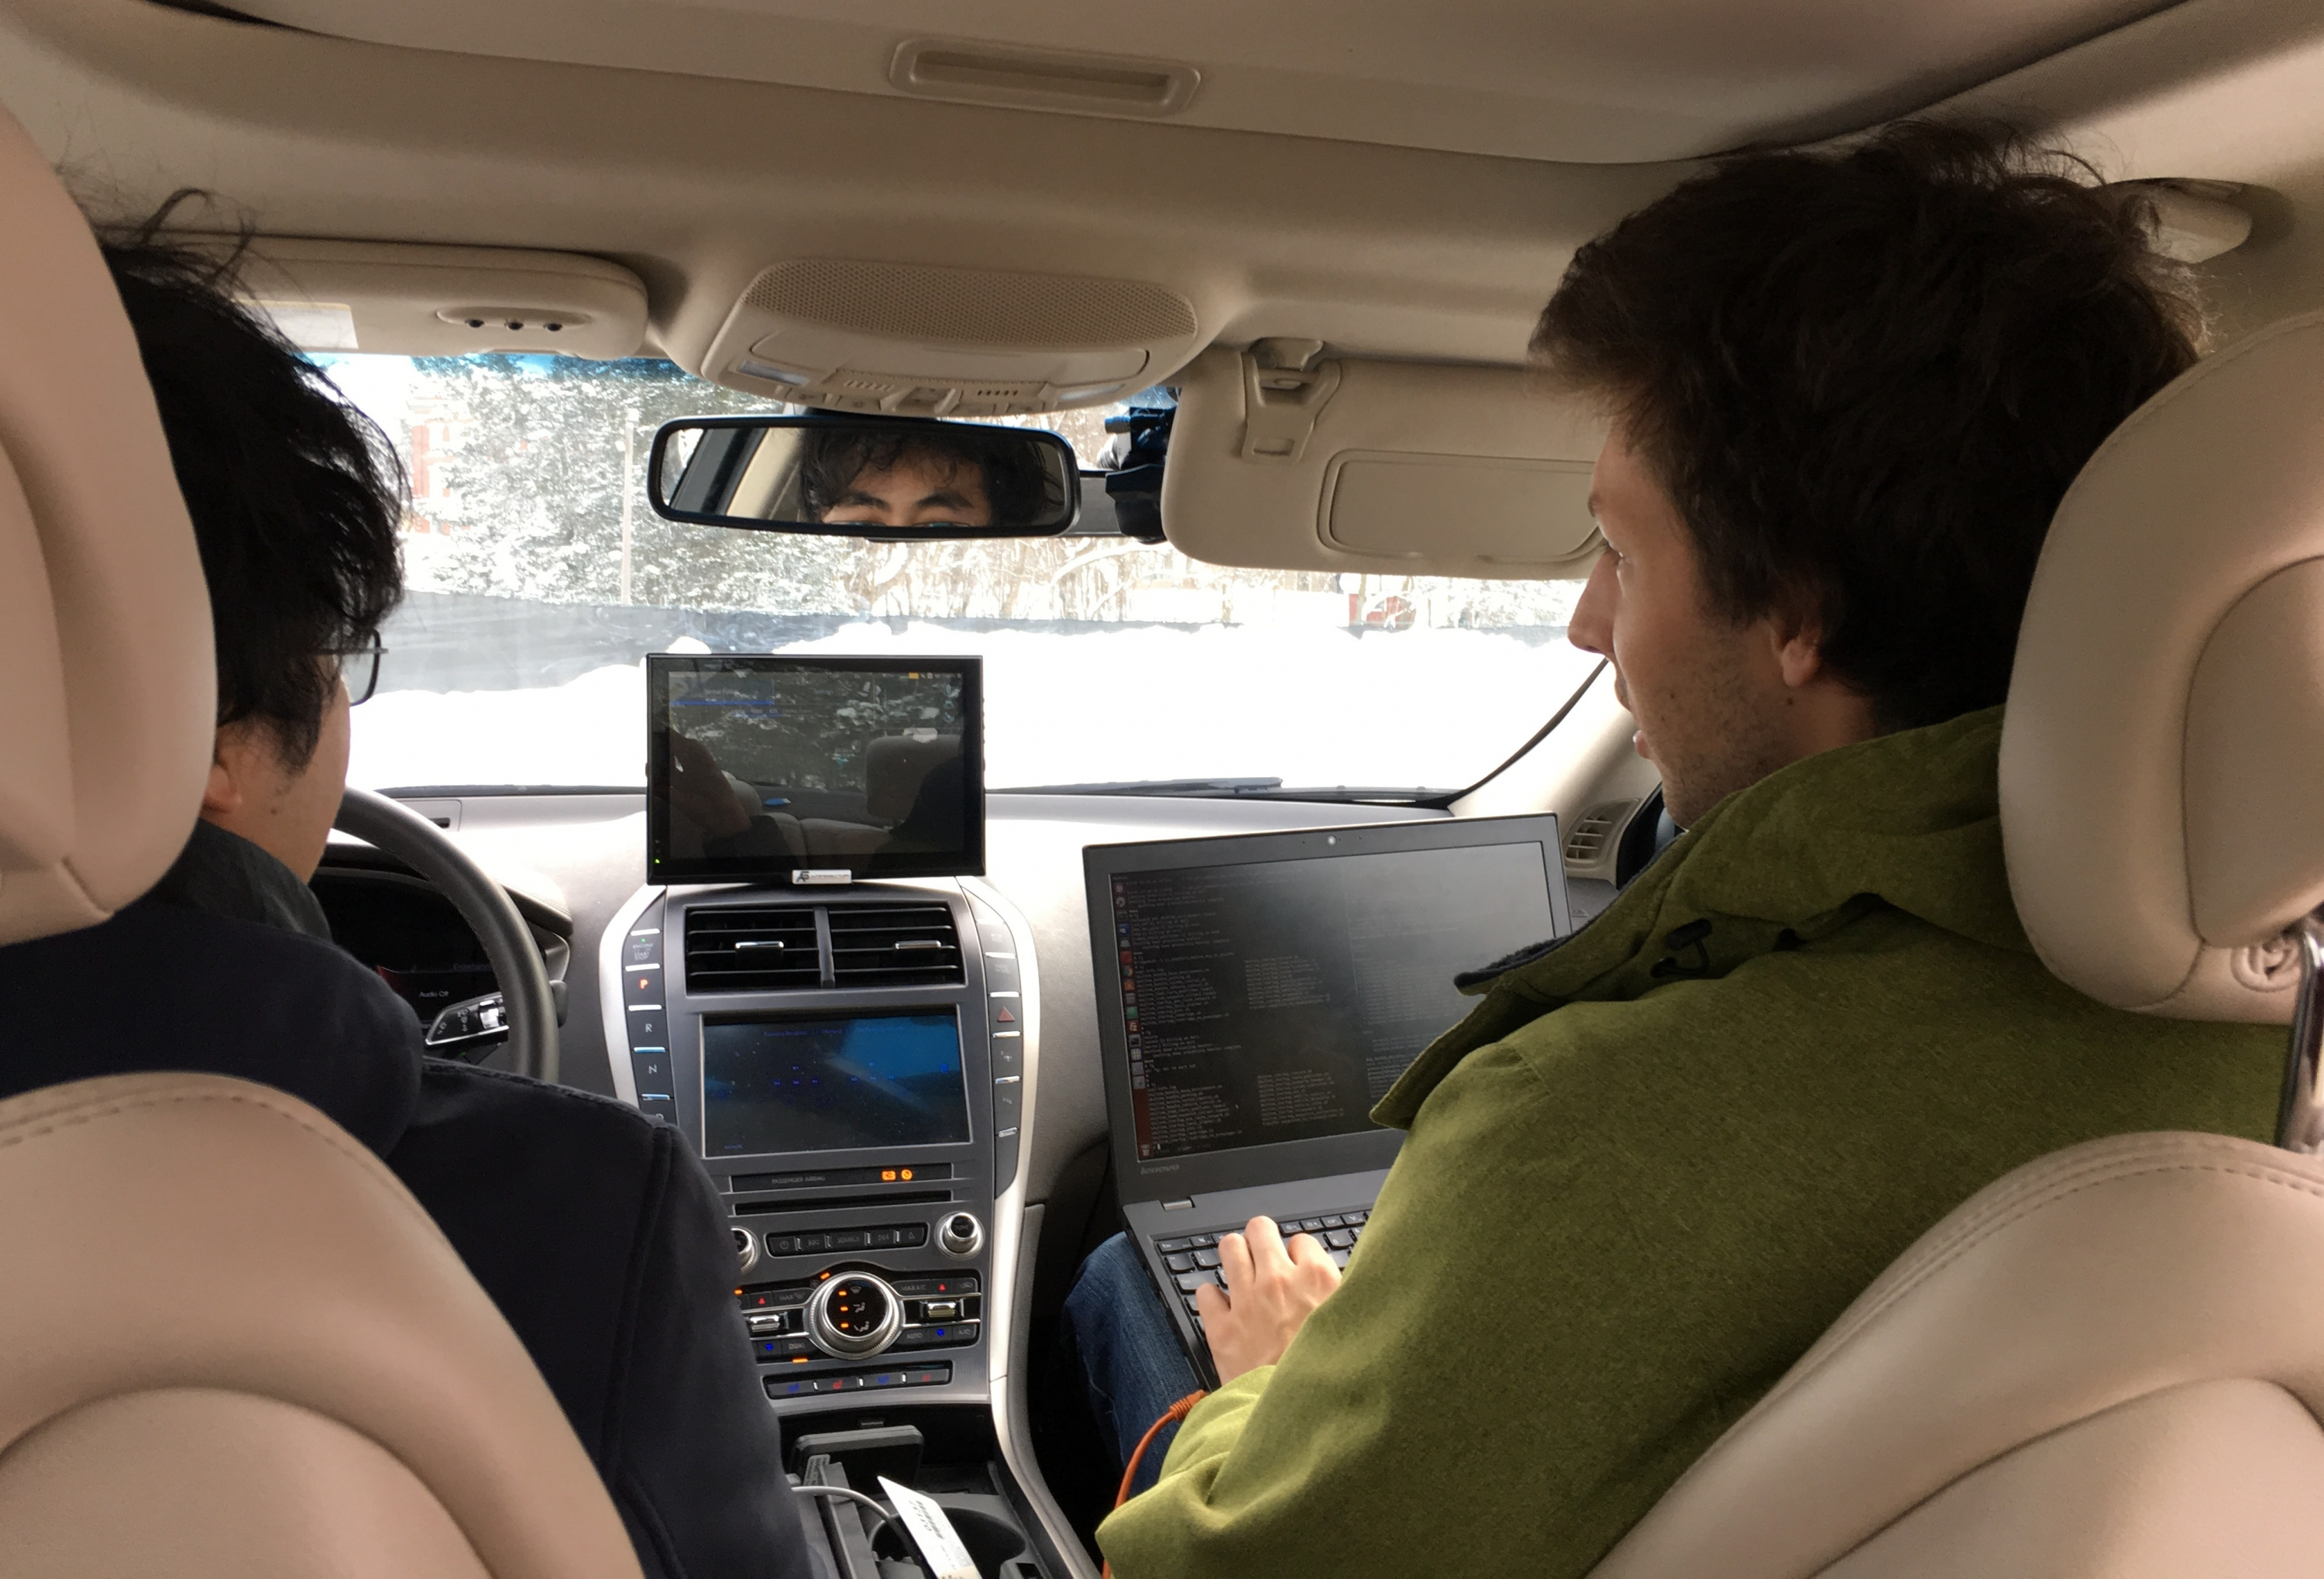 Graduate student researchers Carlos Wang (left) and Ian Colwell track operation of the Renesas sedan during testing in Stratford